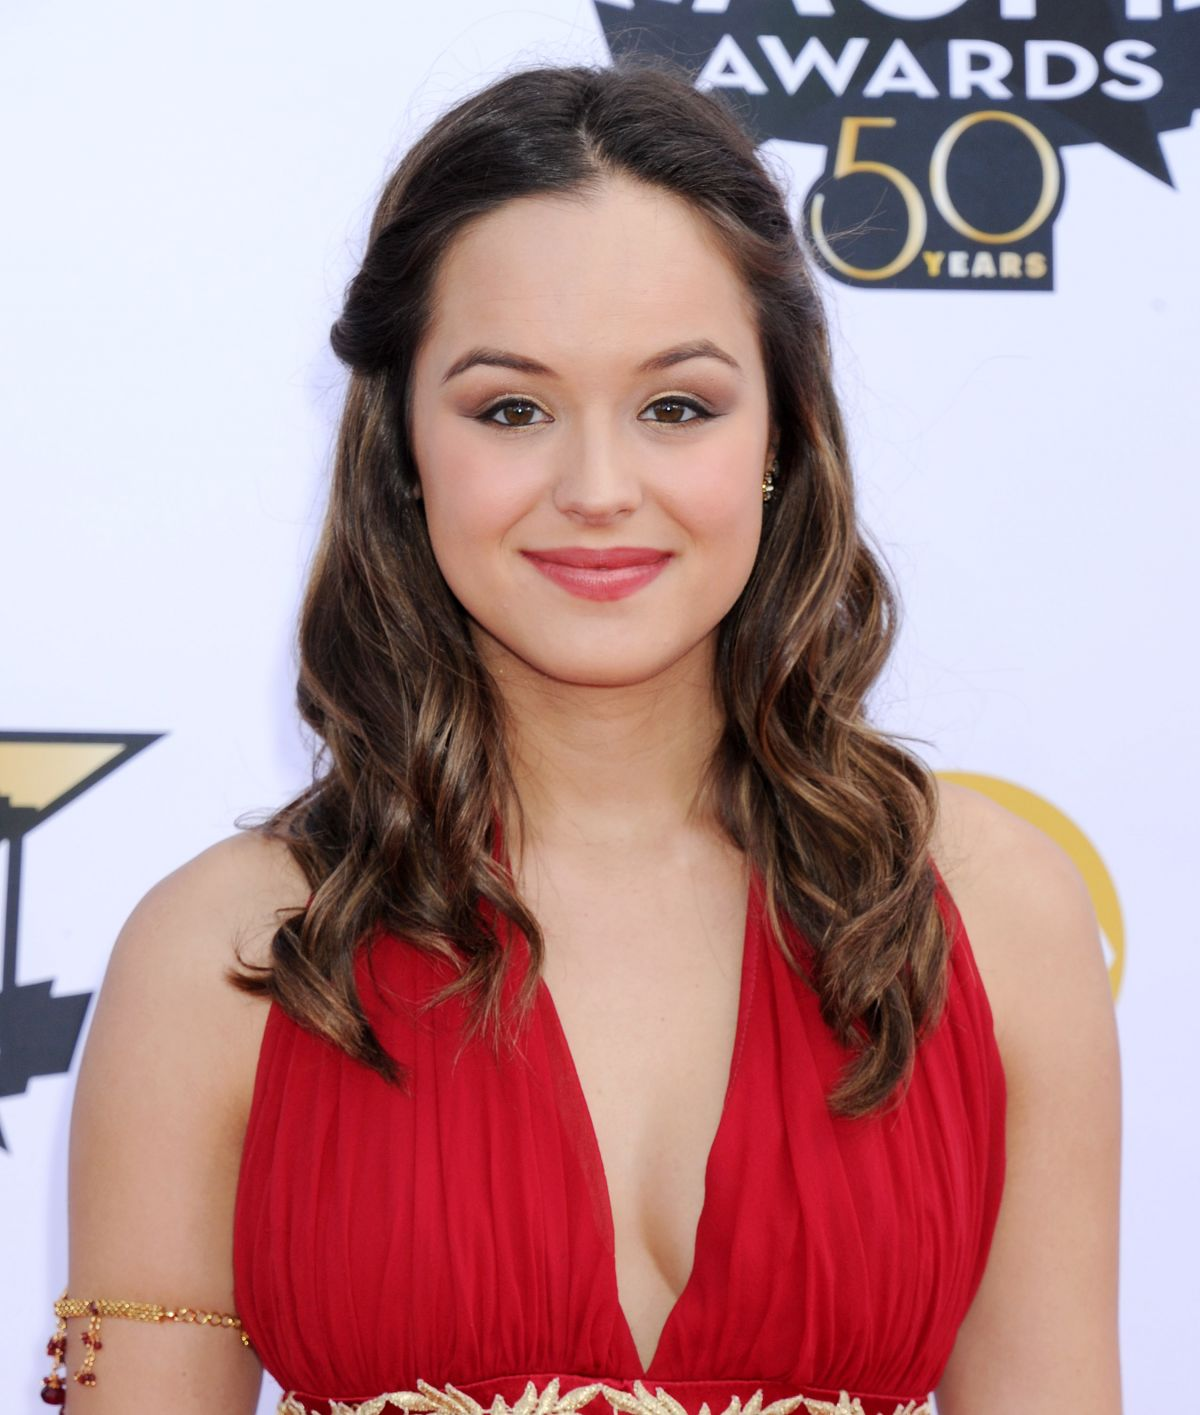 HAYLEY ORRANTIA at Academy of Country Music Awards 2015 in Arlington